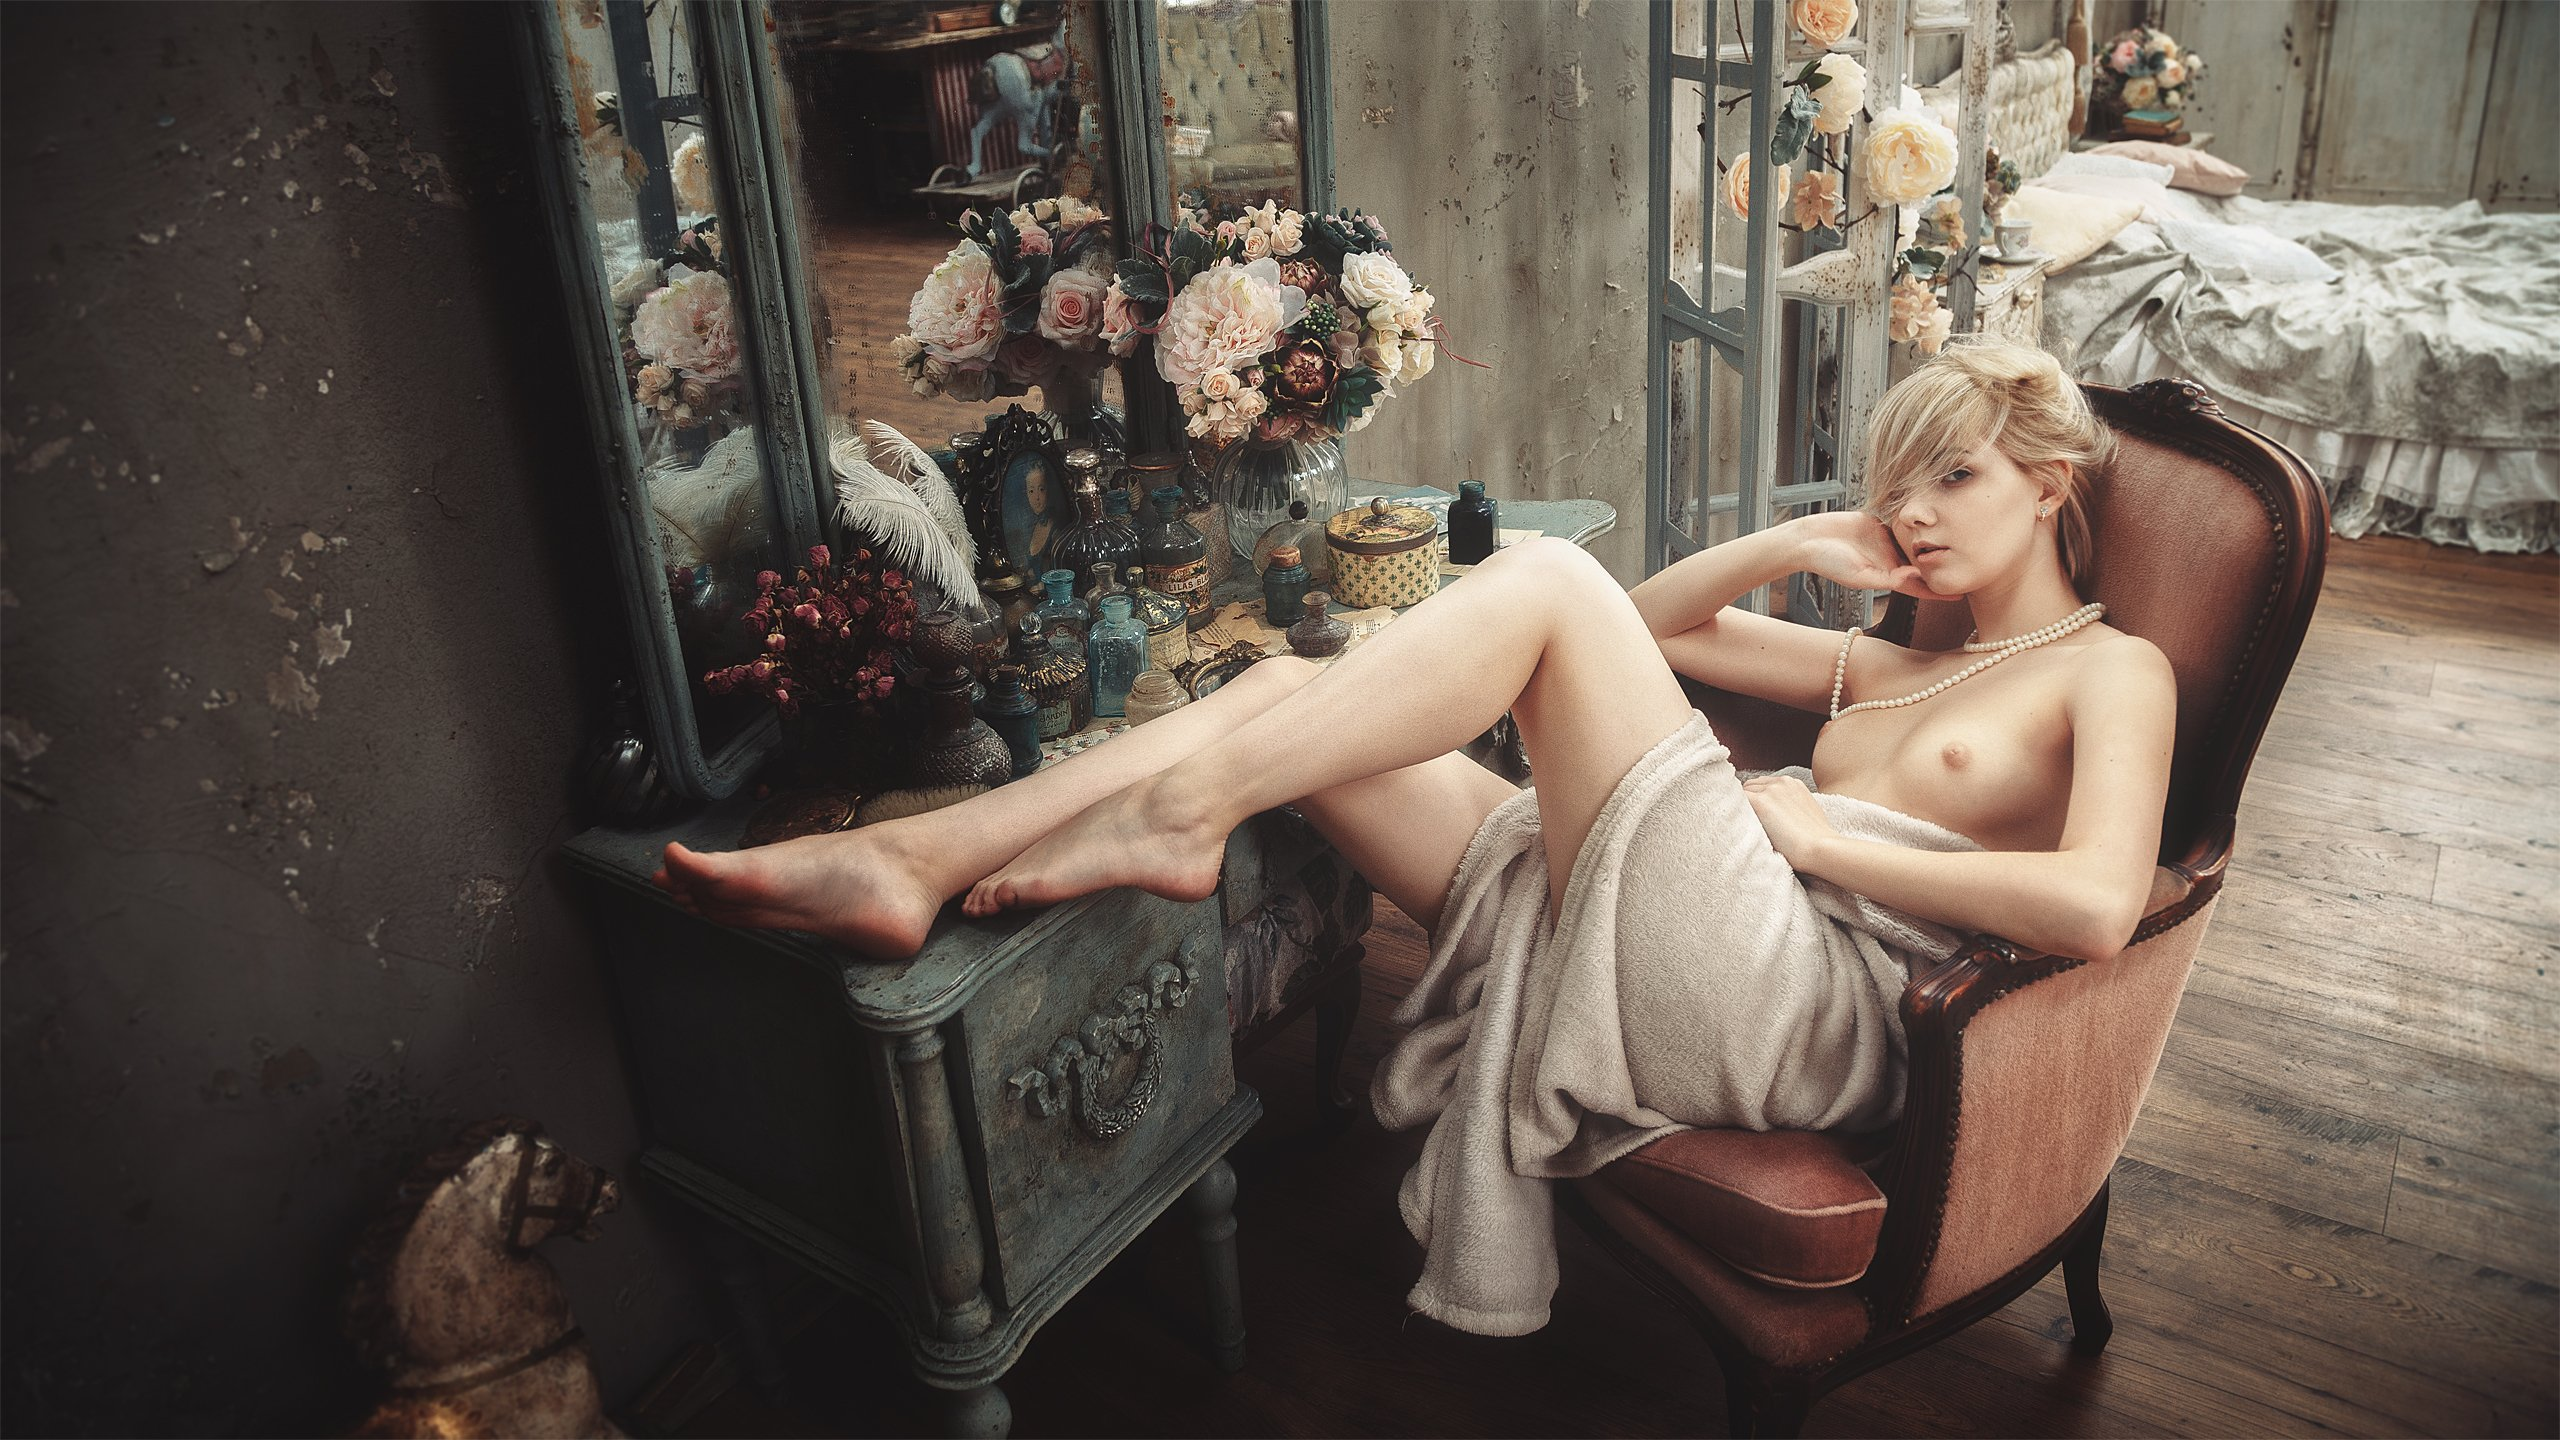 girl, portrait, mirror, makeup, cosmetics, chest, naked, retro, legs, flowers, bedroom, russia, Васильев Андрей